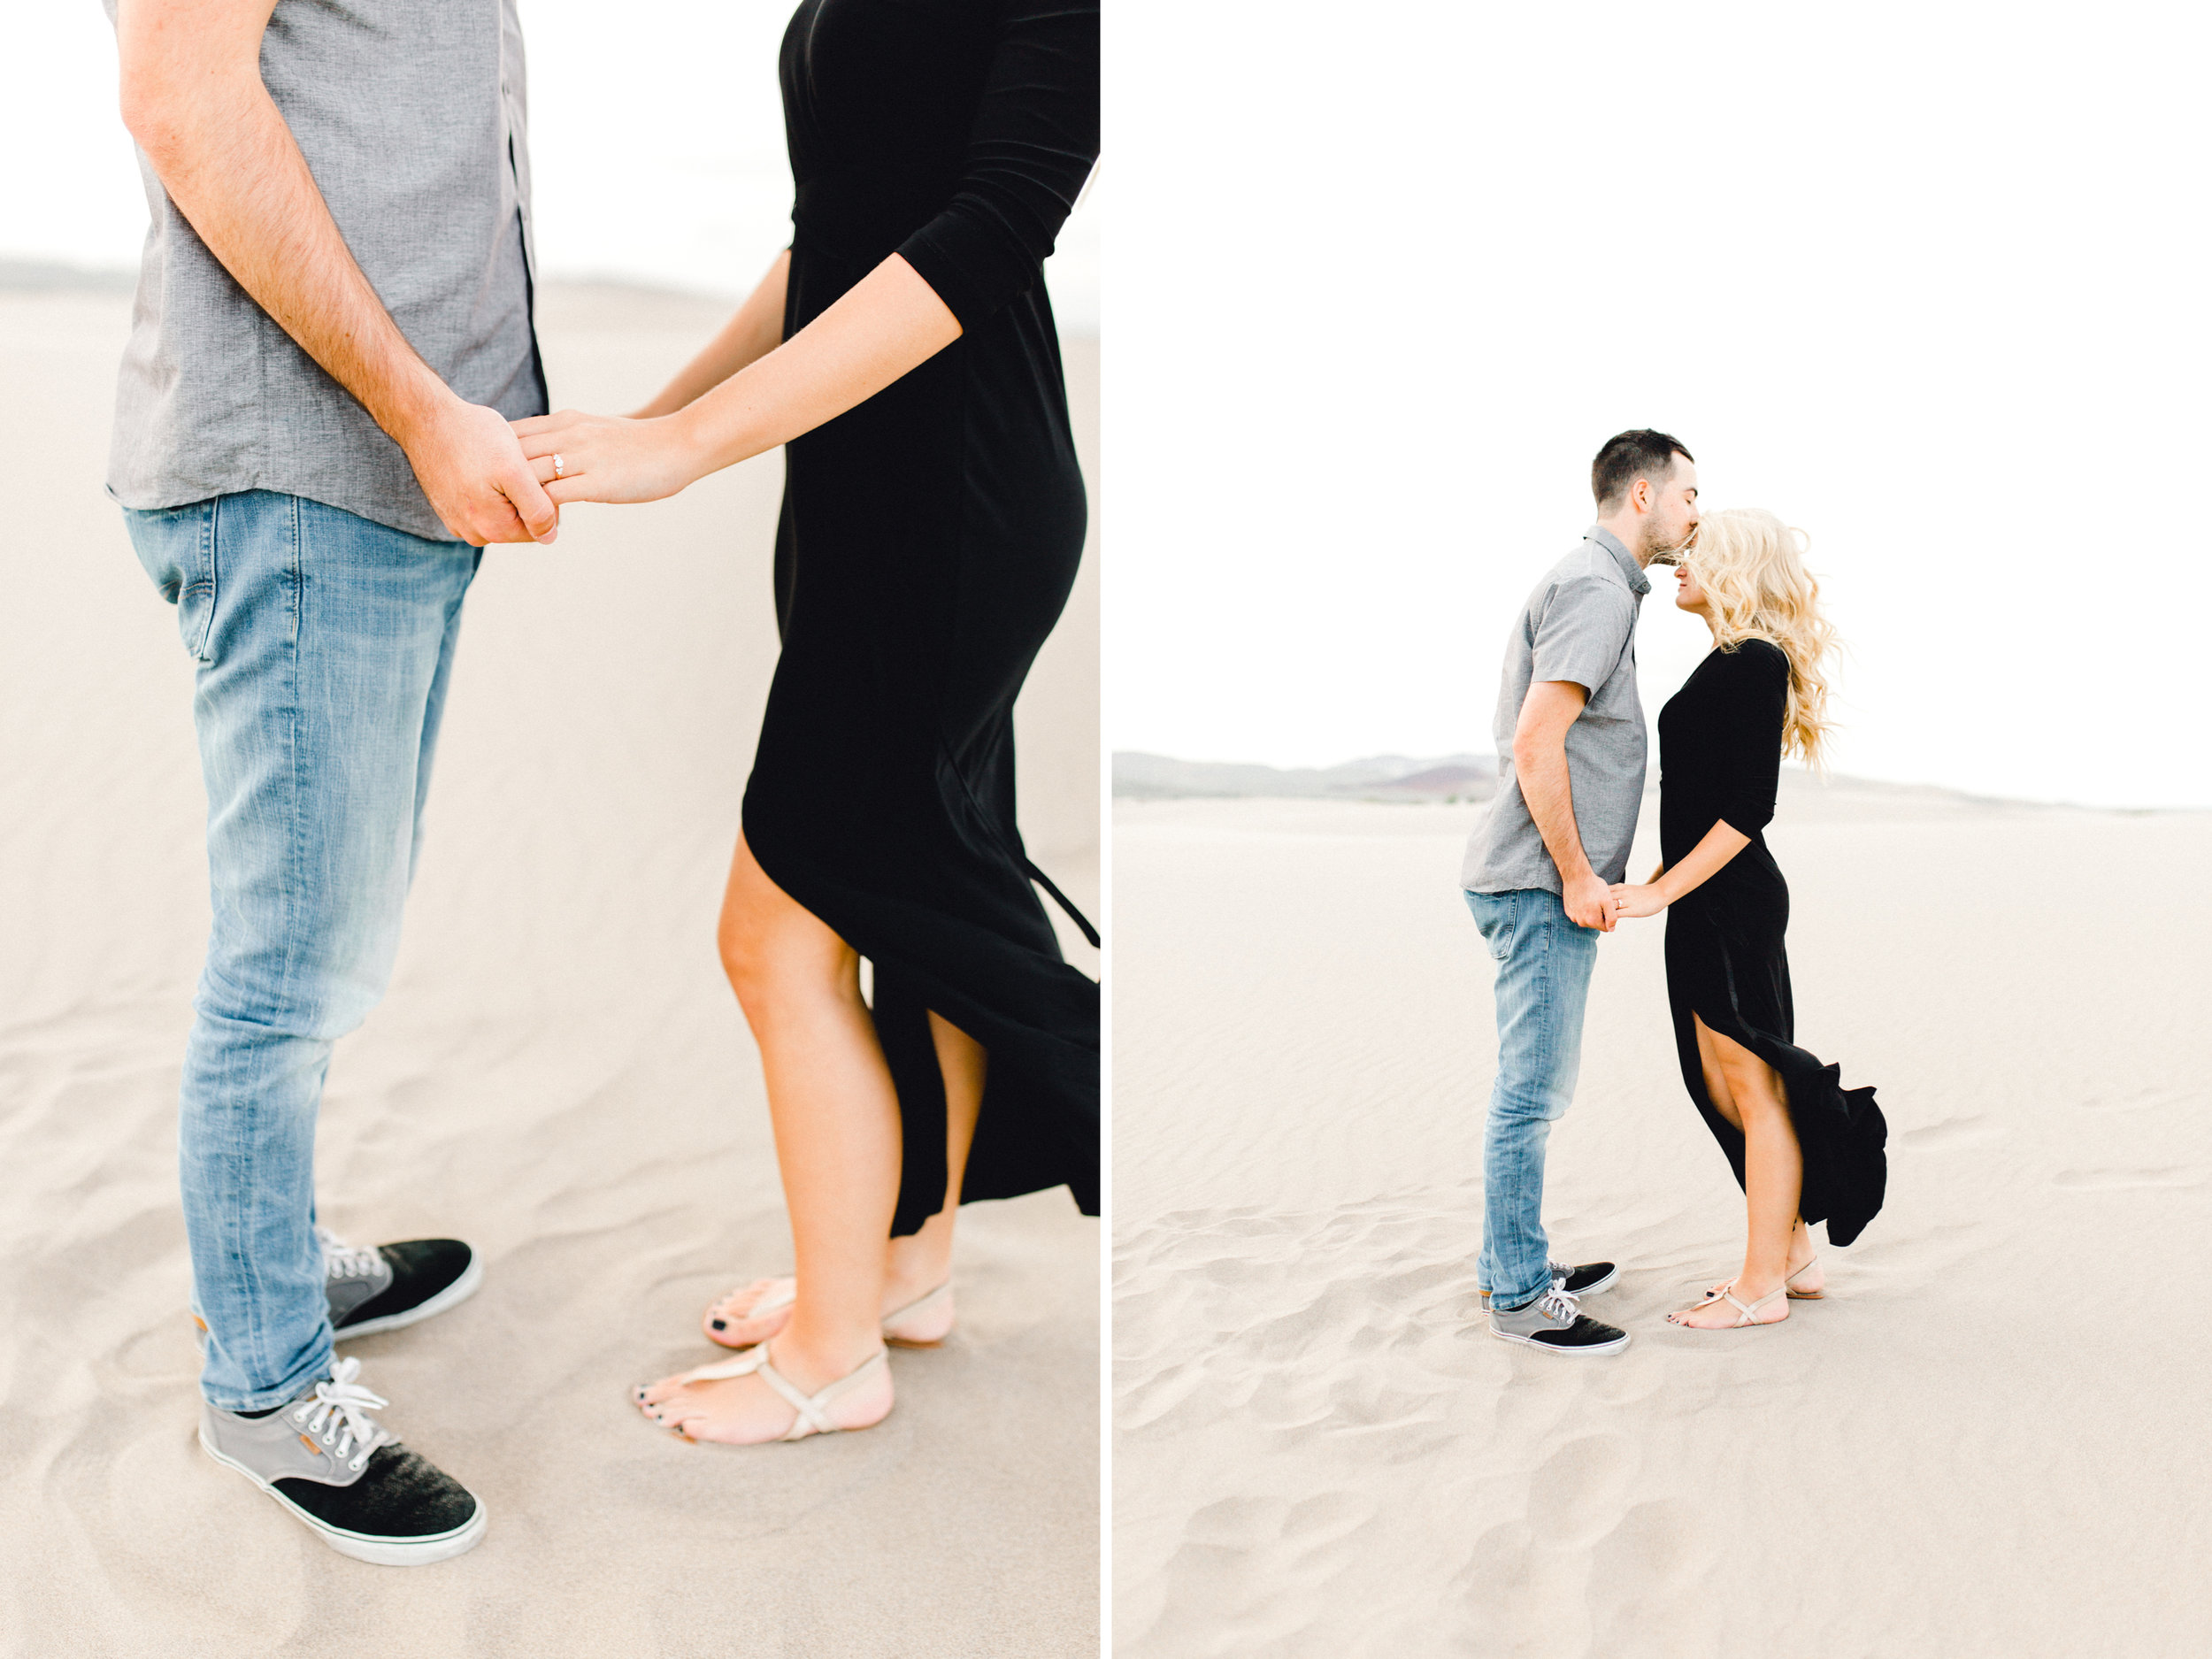 rexburg-idaho-sand-dunes-engagement-photographer-august-trevor2.jpg